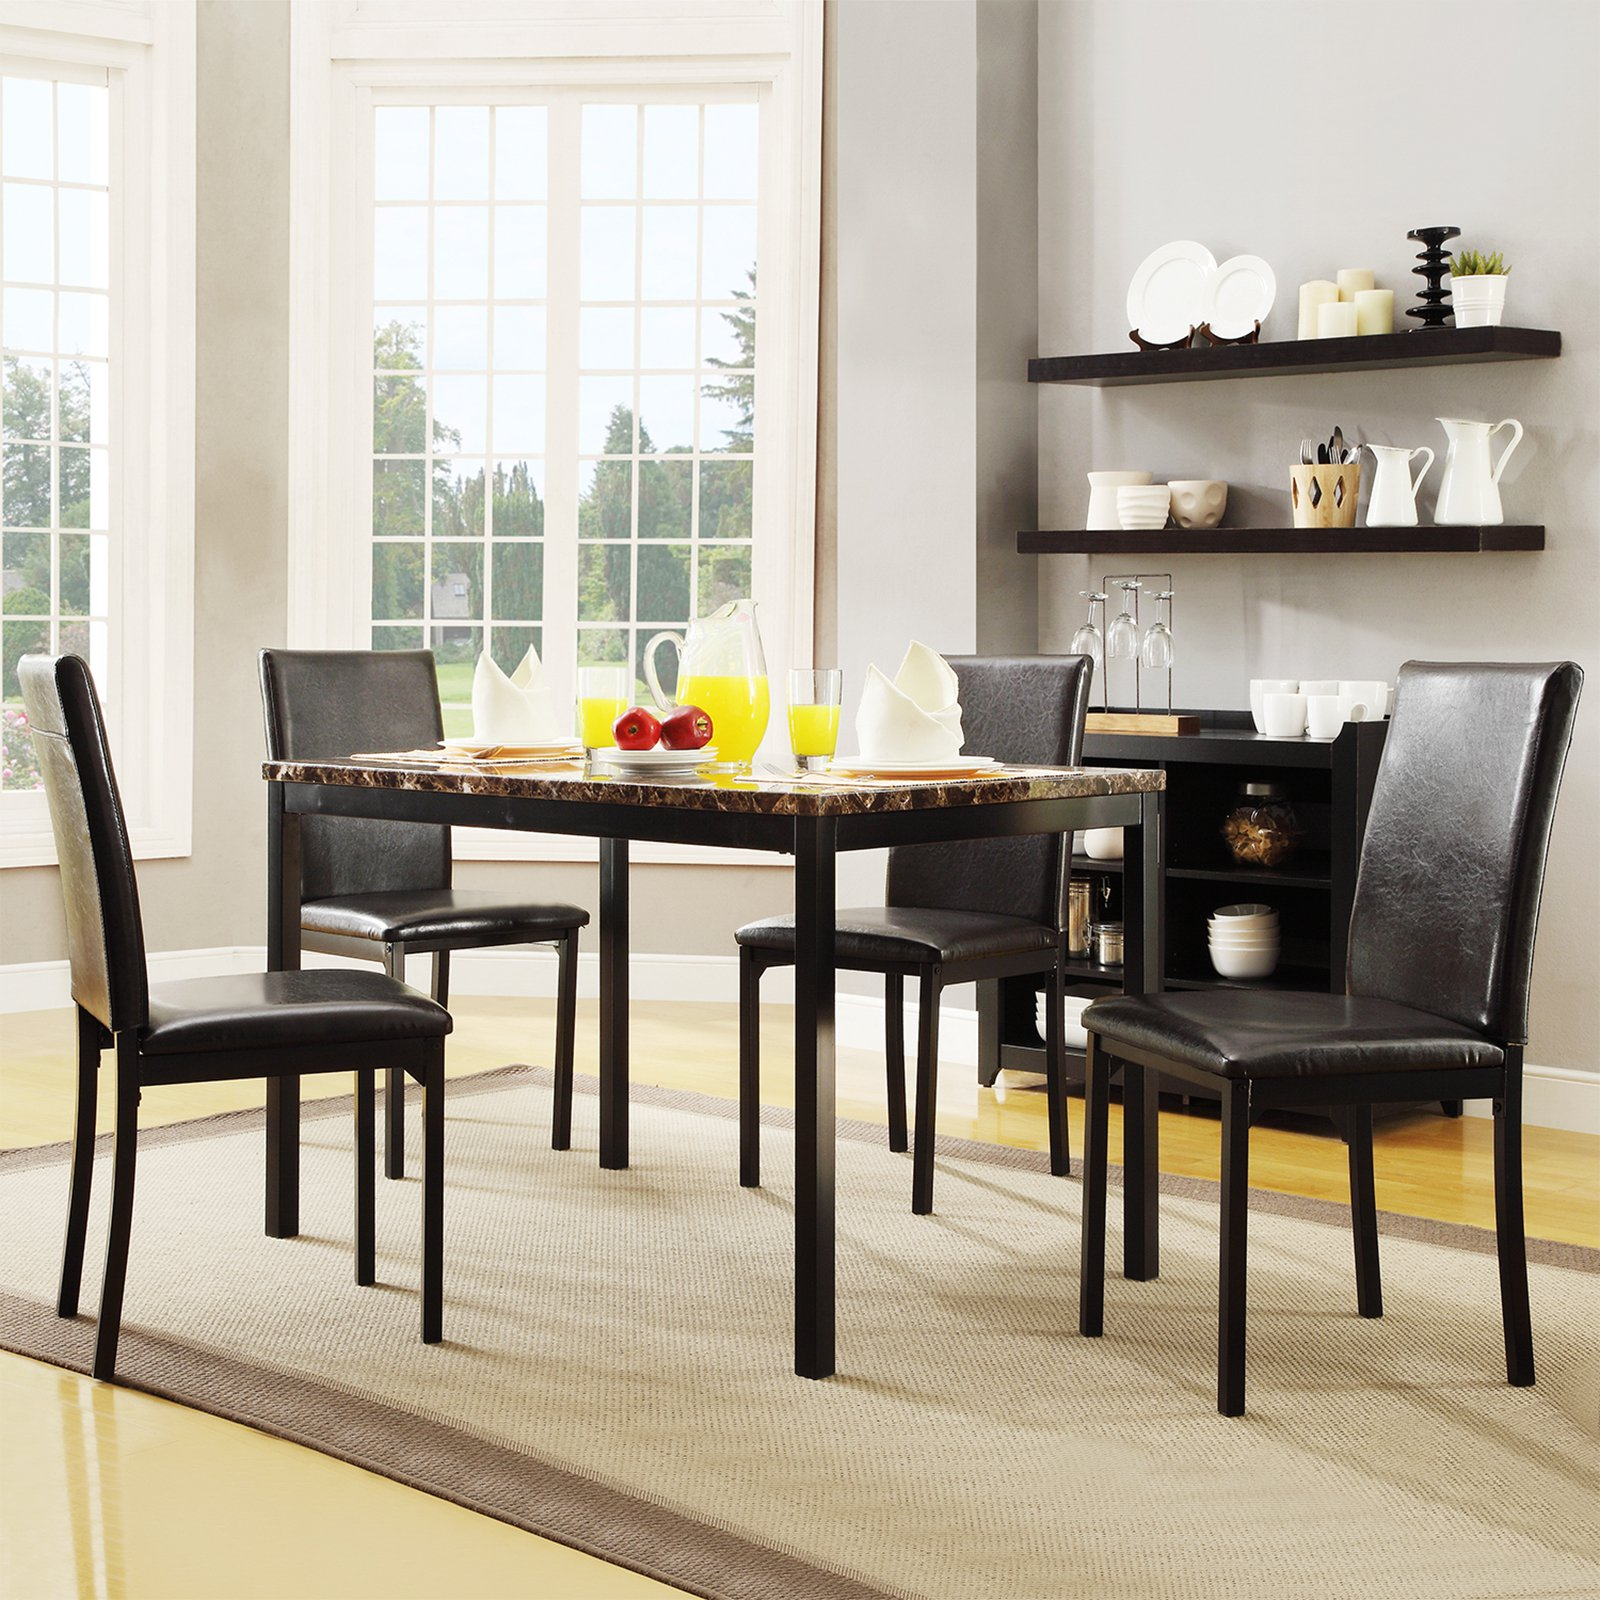 Homelegance Tempe 5-Piece Metal Table with Faux Marble Top Dining Set - Dark Brown